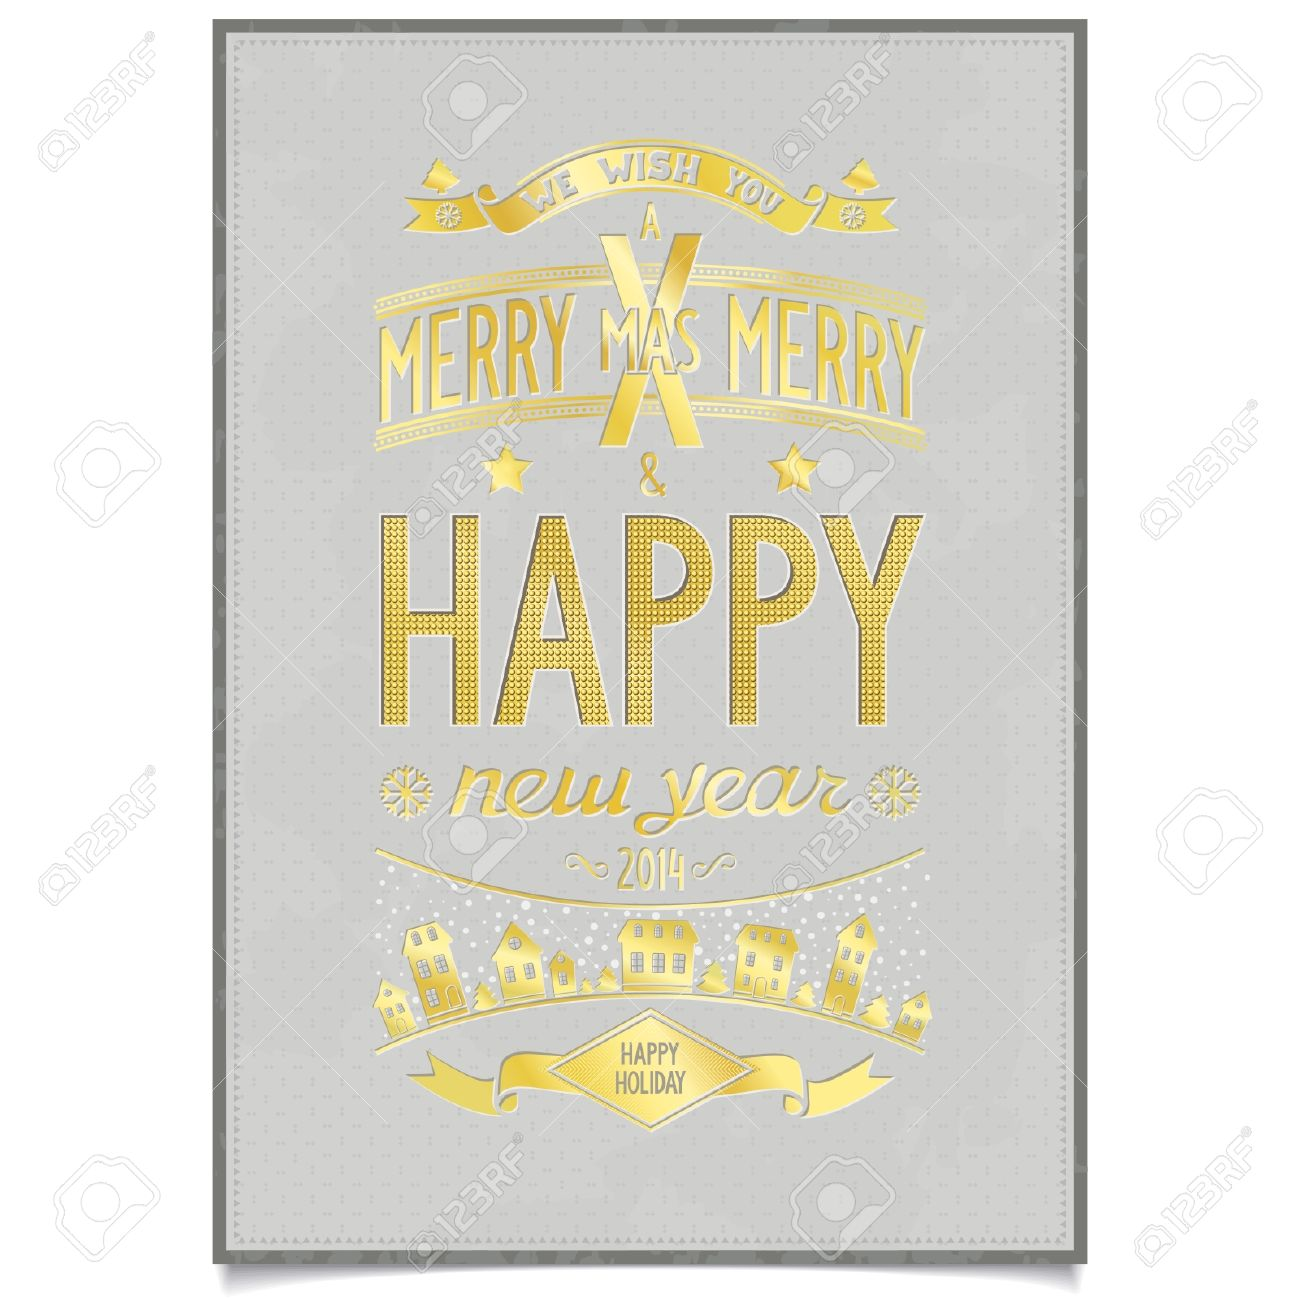 happy new year gold wishes design card in retro poster style on grunge grey background vector